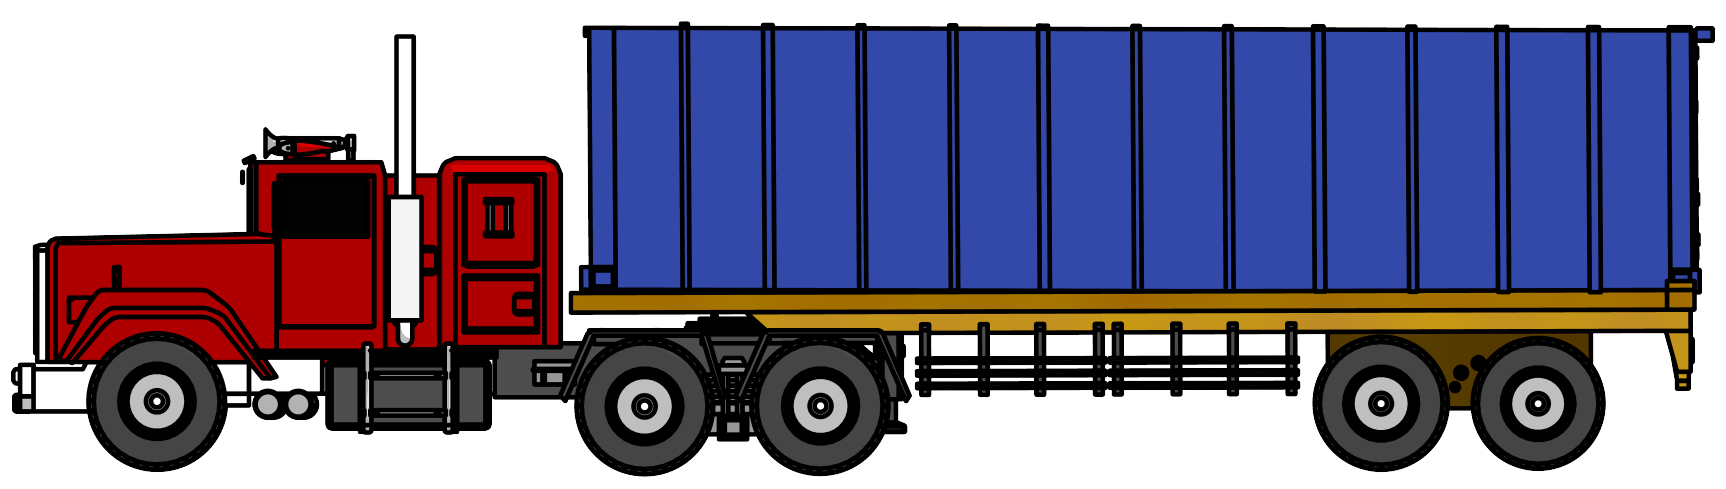 Truck clipart. Industrial big png image